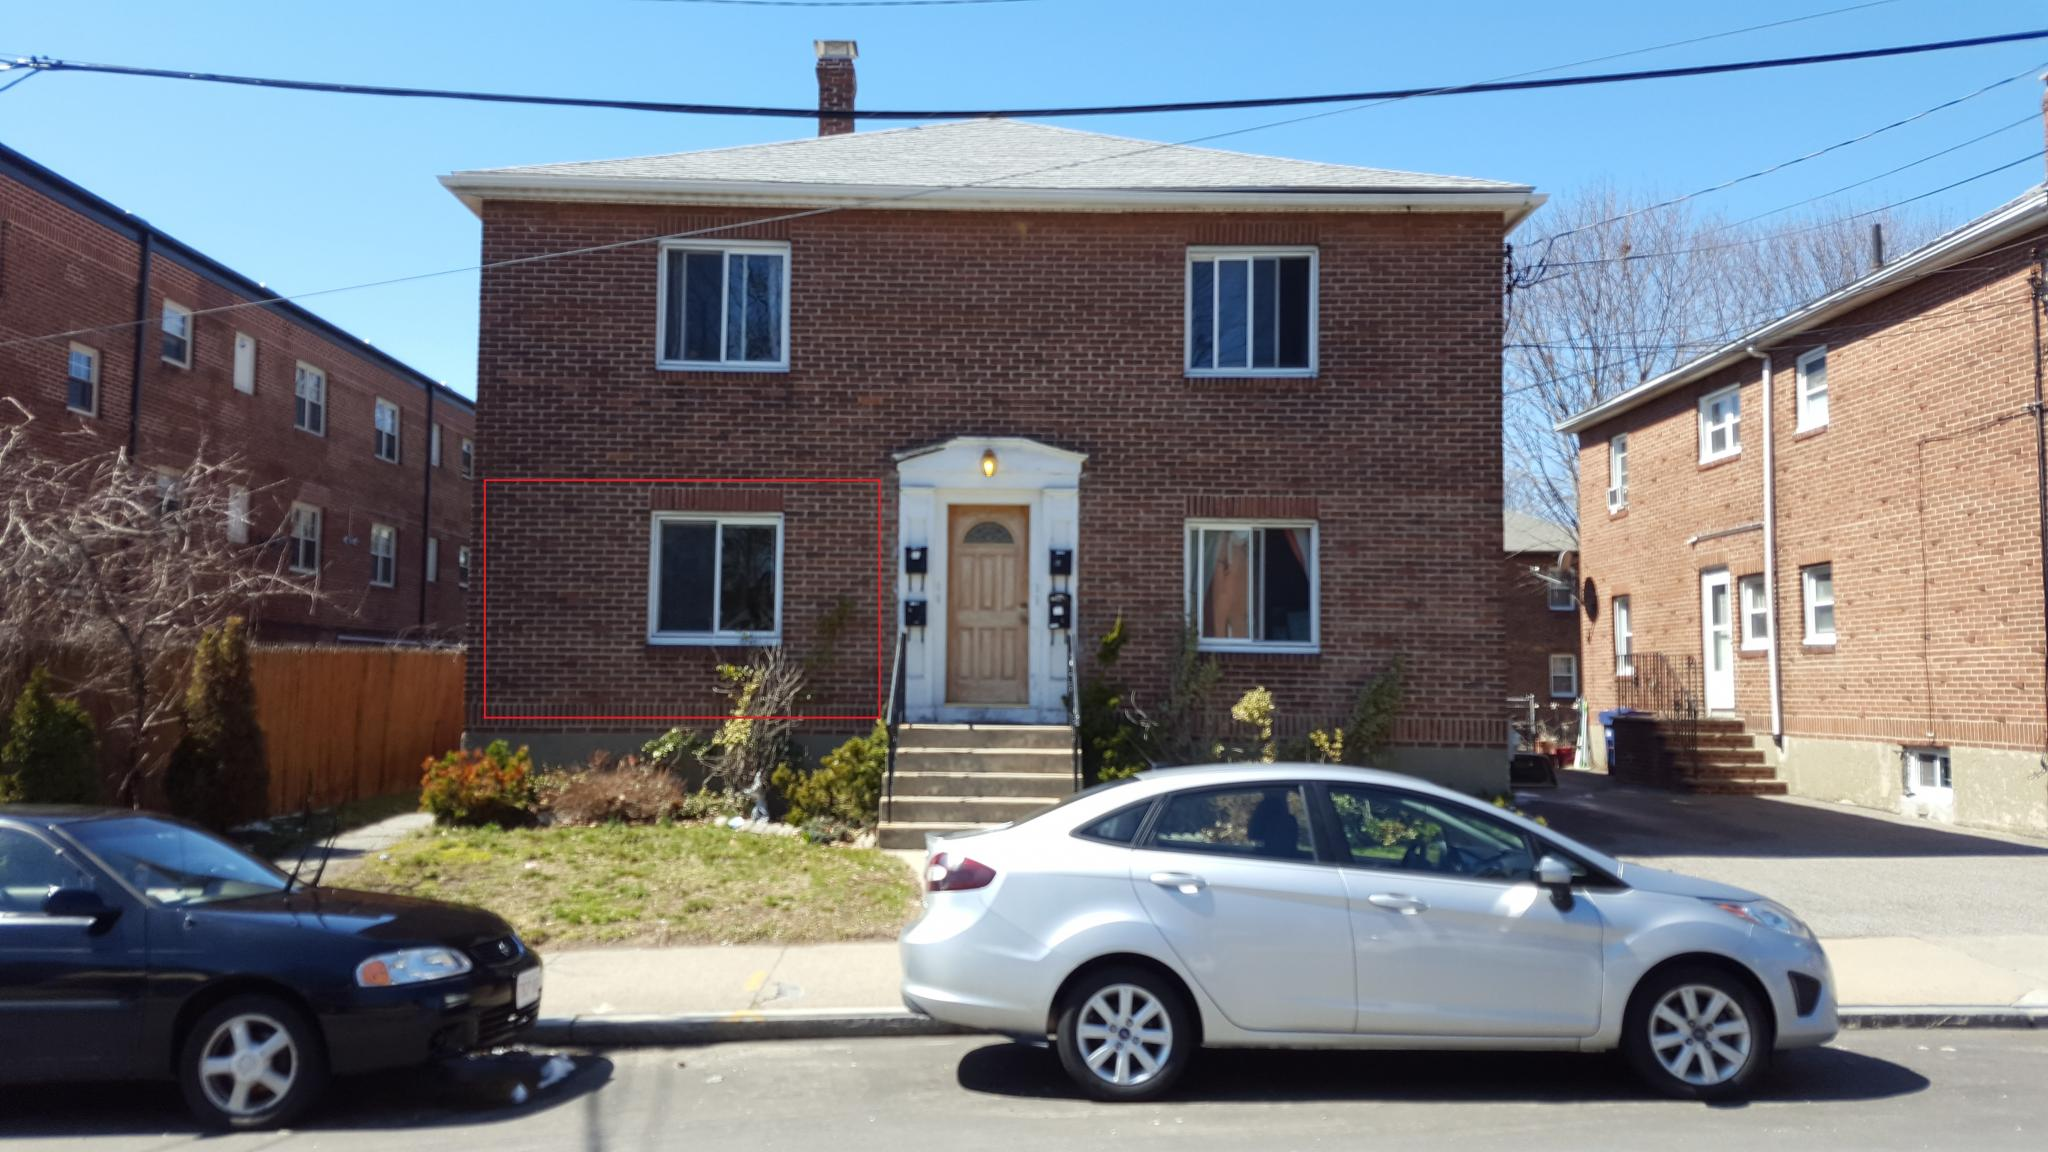 Single Family Home for Rent at 8 Brock Street 8 Brock Street Boston, Massachusetts 02135 United States